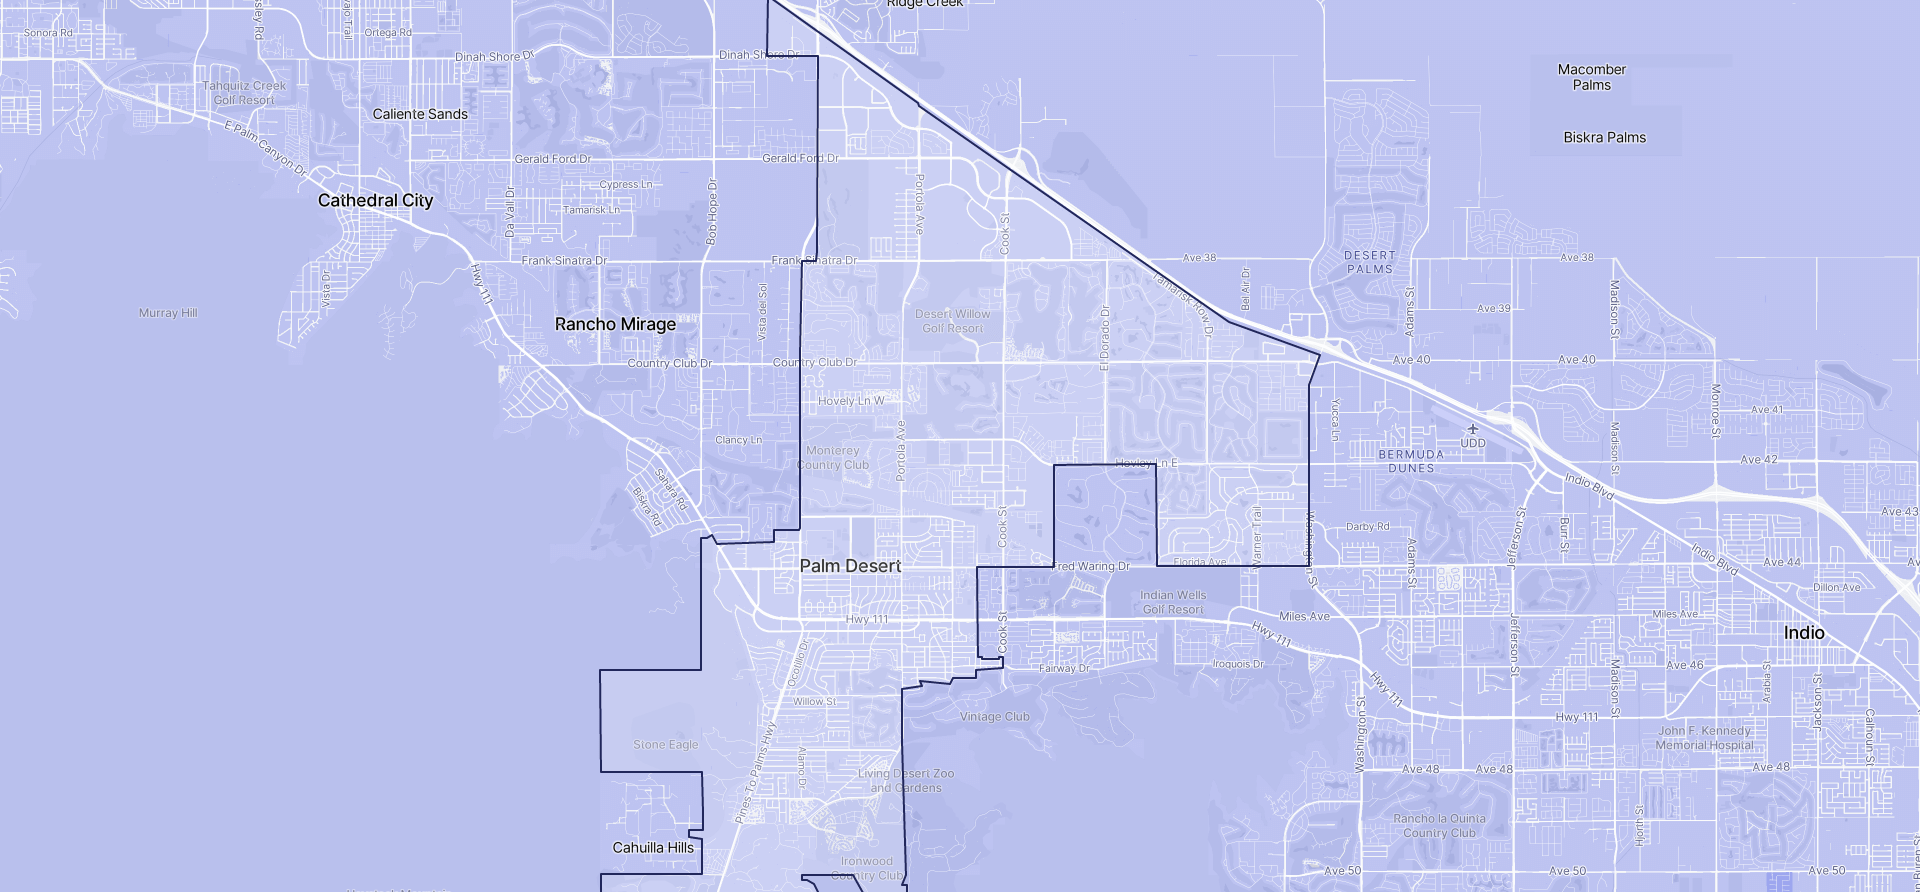 Image of Palm Desert boundaries on a map.